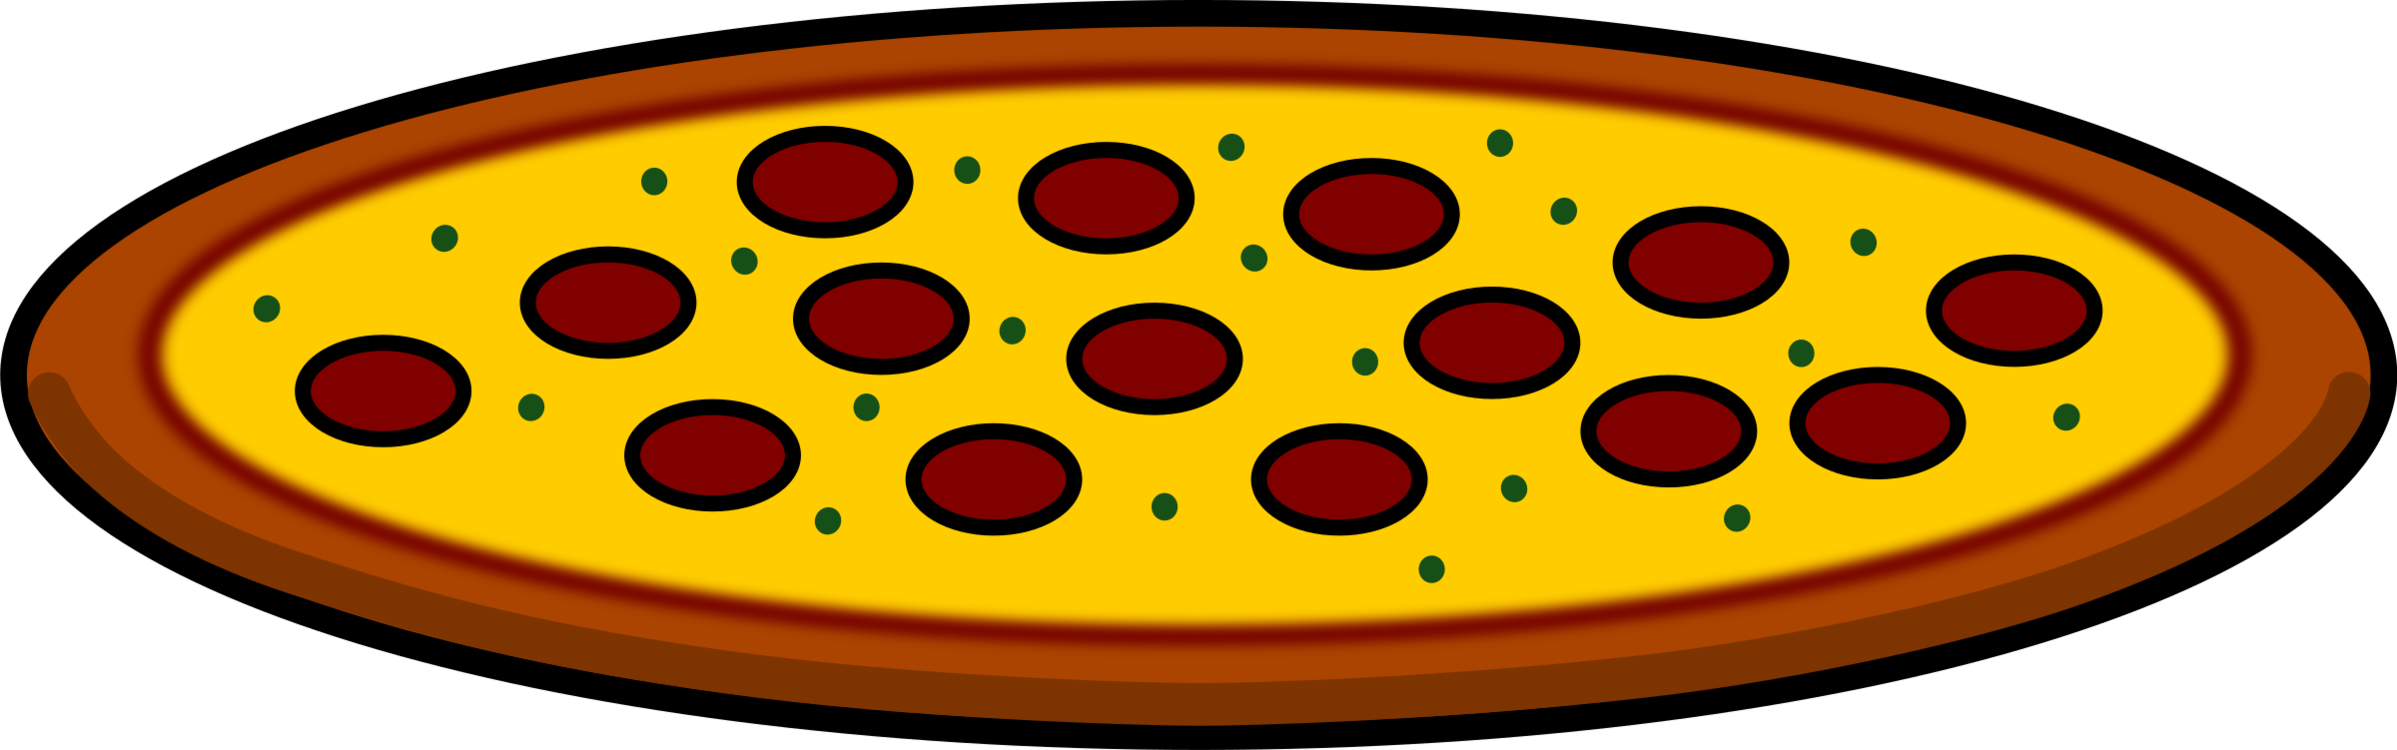 Wine clip cheese party. Pizza pepperoni free commercial